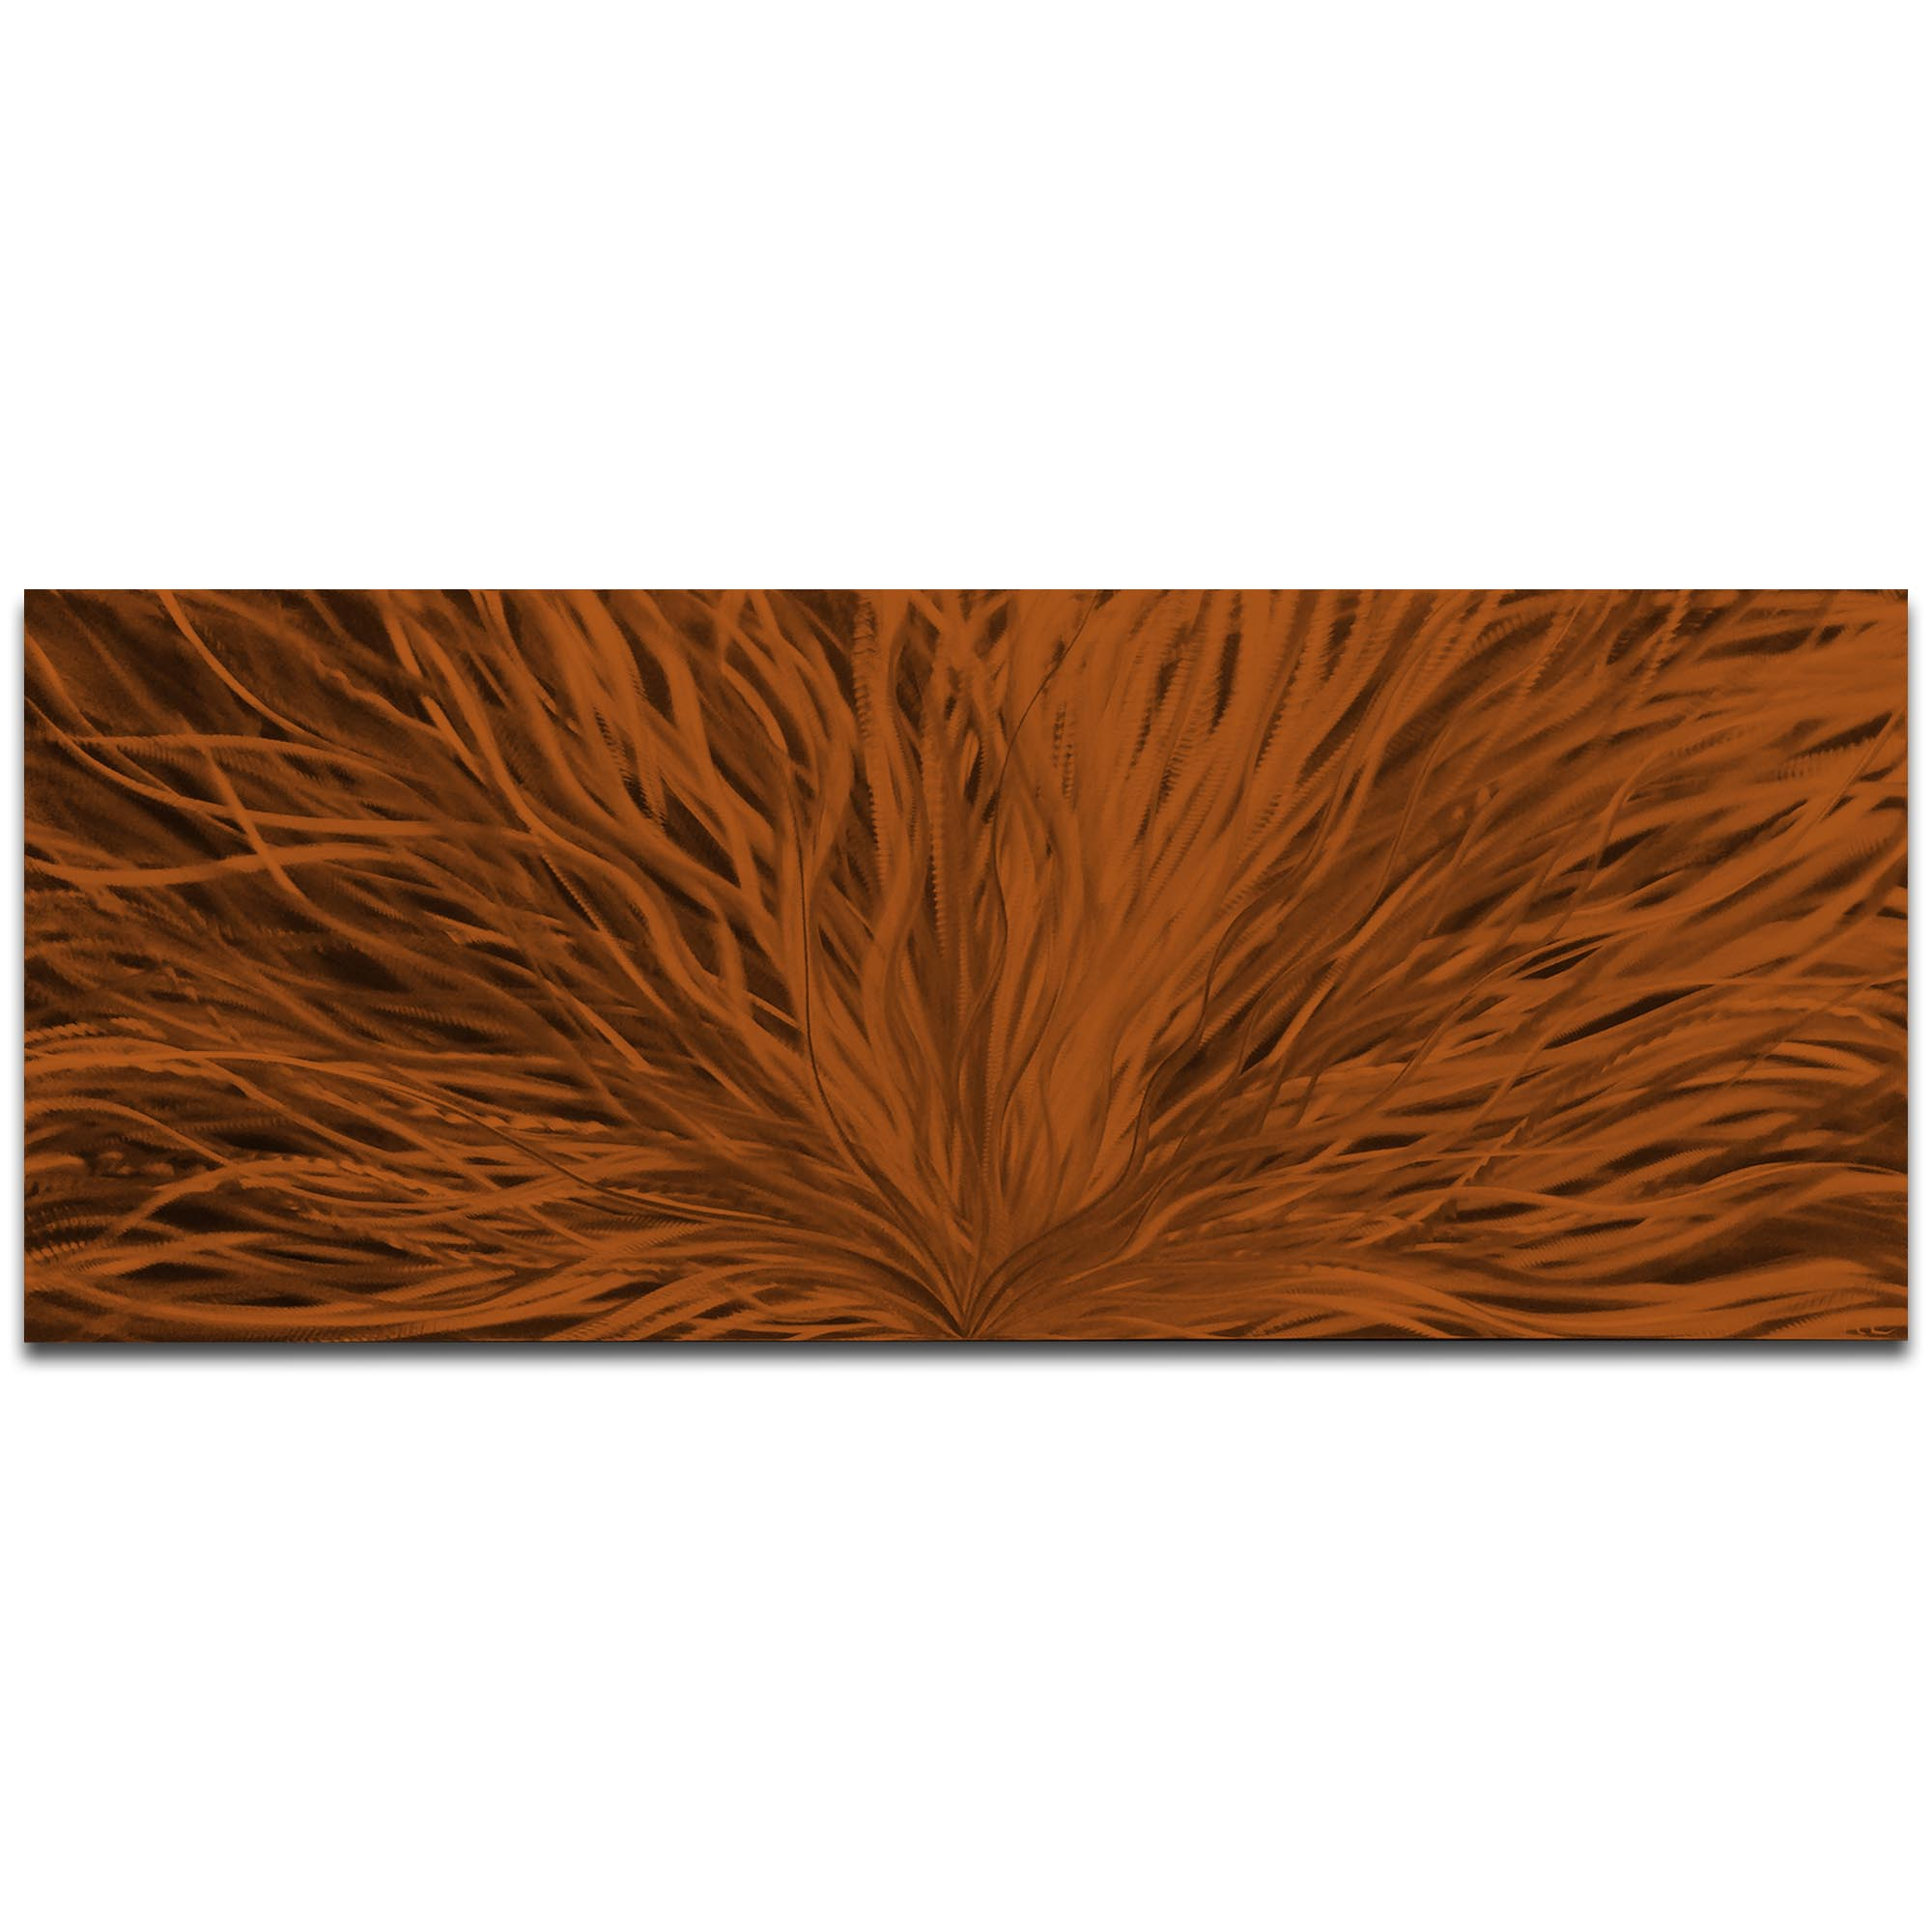 Helena Martin 'Blooming Brown' 60in x 24in Original Abstract Art on Ground and Painted Metal